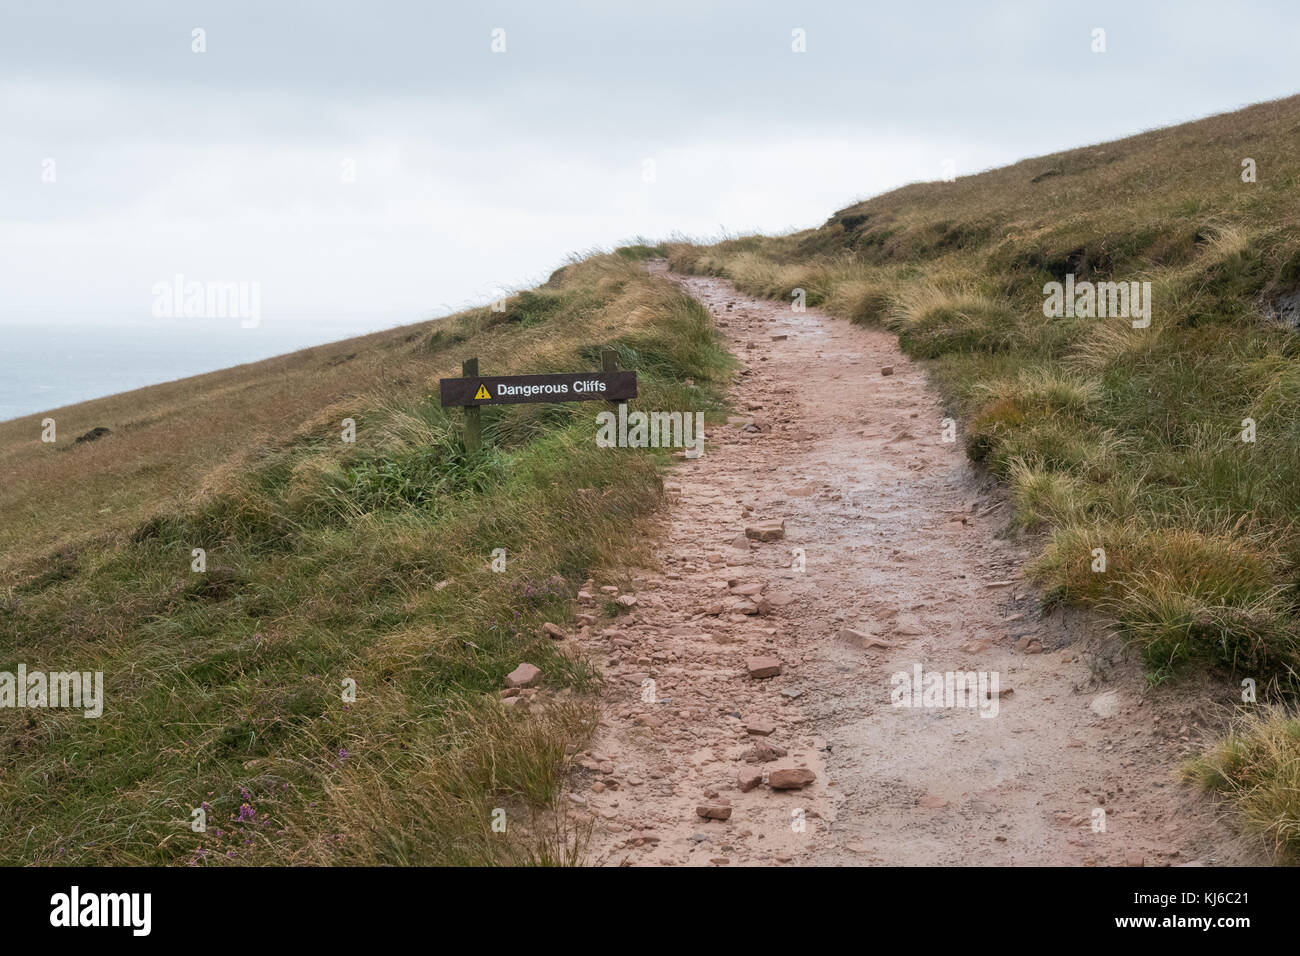 dangerous cliffs sign next to footpath disappearing into the distance, Hoy, Orkney, Scotland, UK - Stock Image